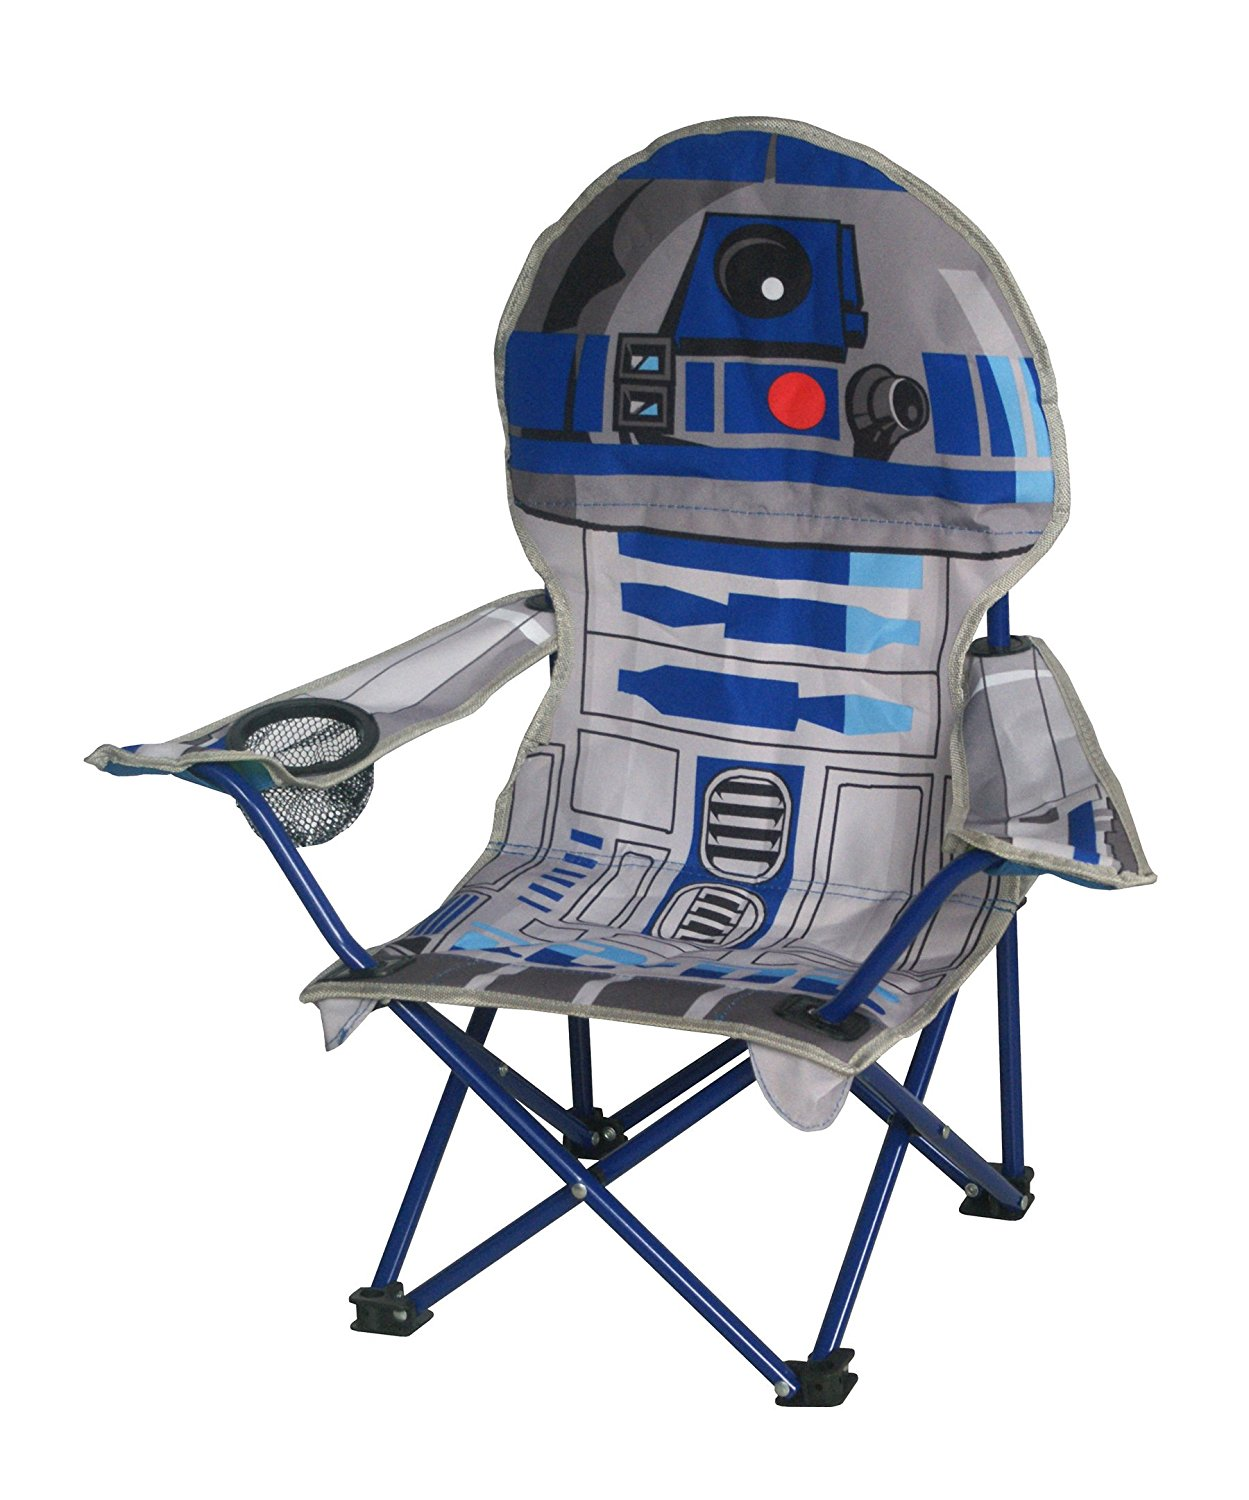 kids character chairs lounge chair replacement straps cute star wars r2d2 16 77 from 26